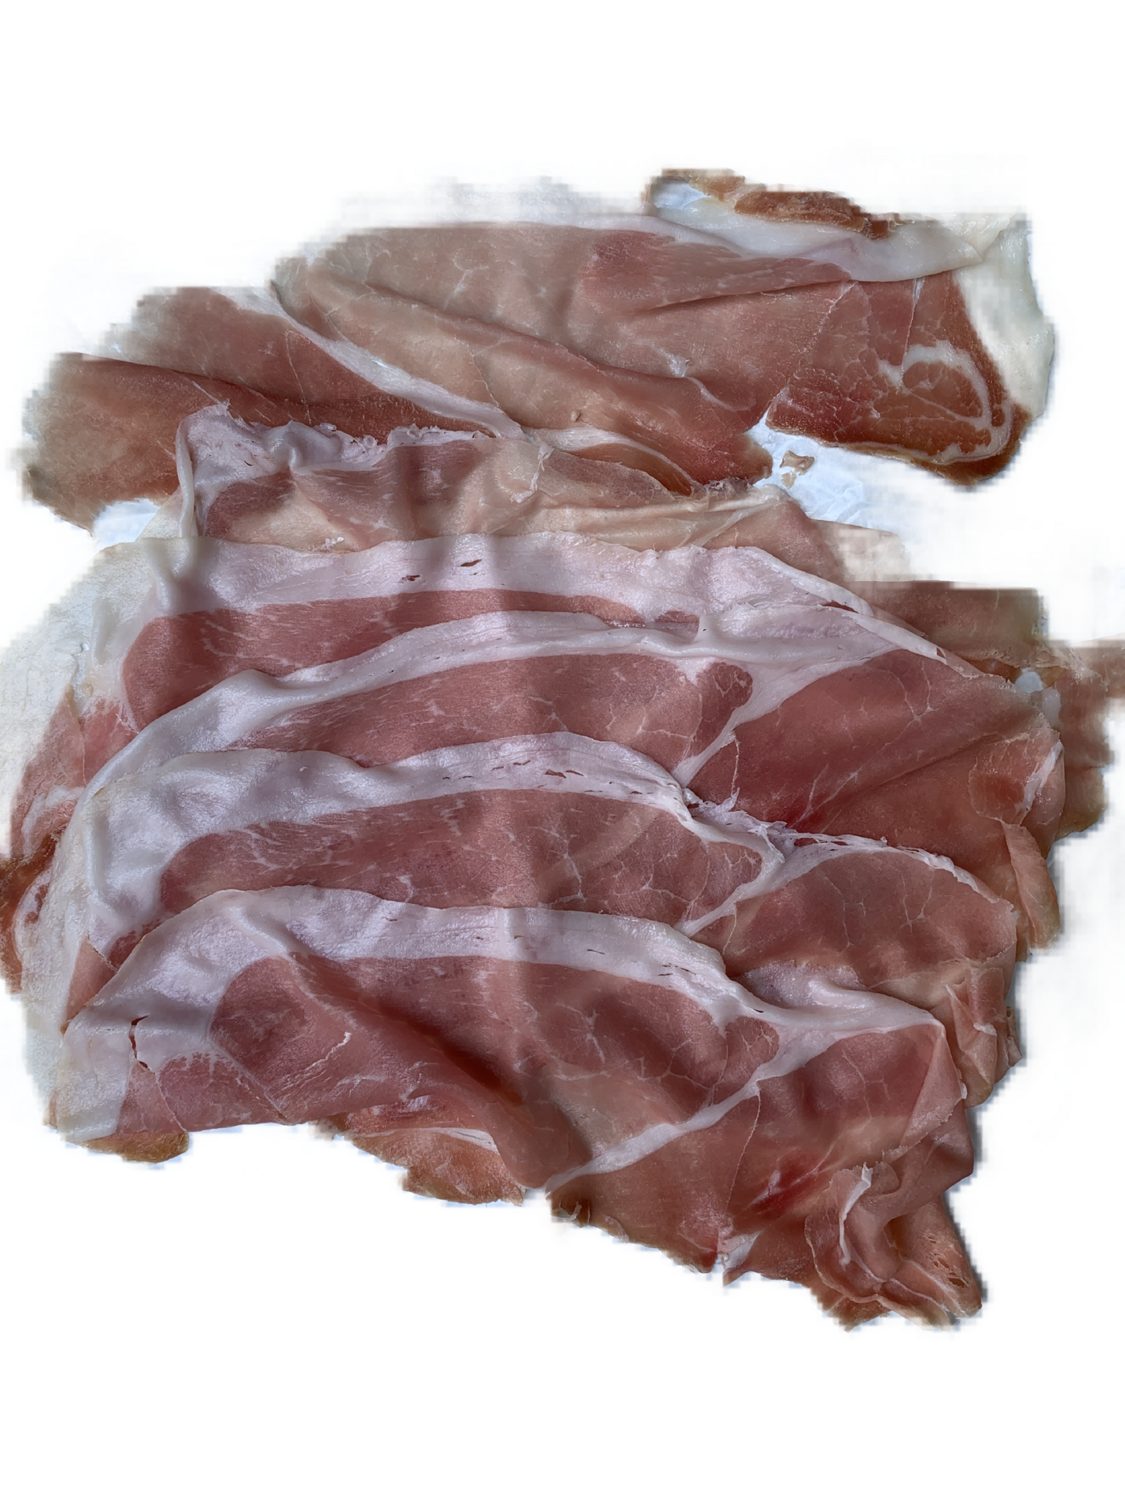 prosciutto san Danielle sliced thin 8 oz.